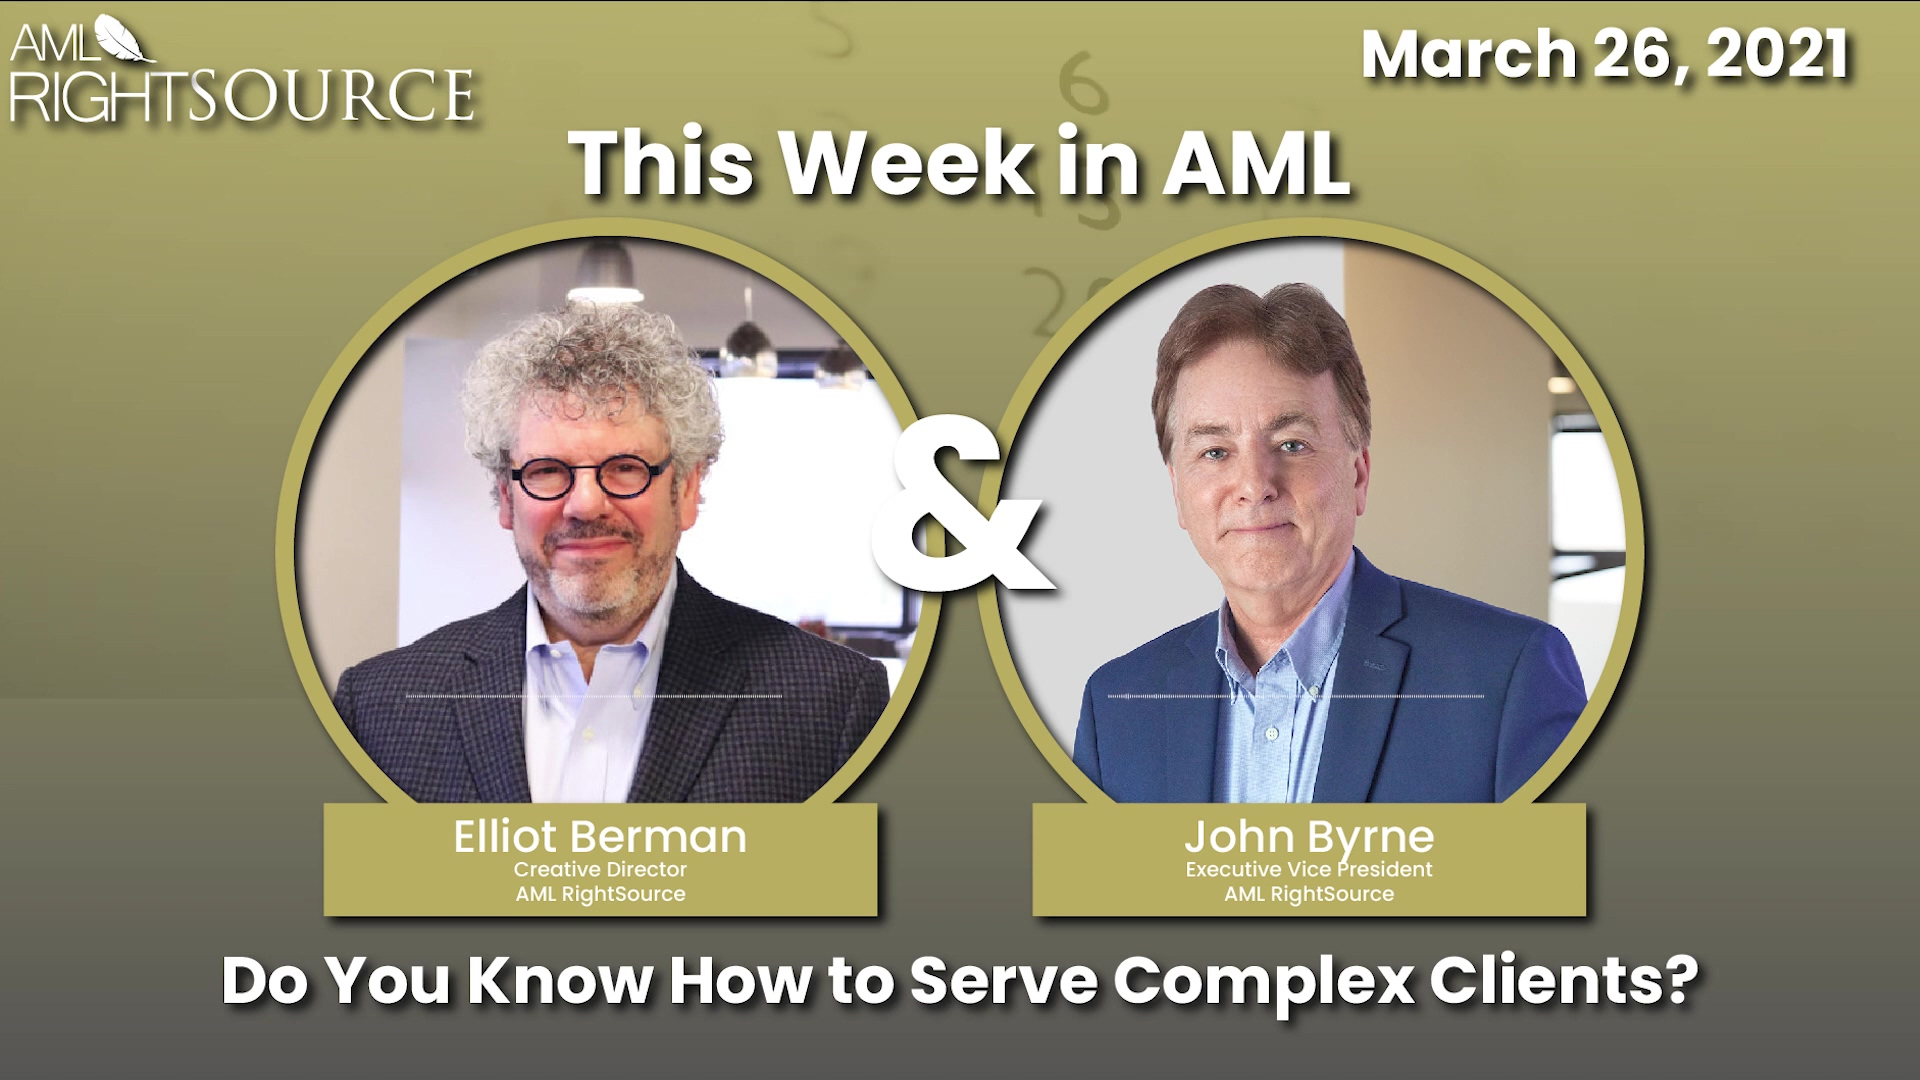 Do You Know How to Serve Complex Clients?